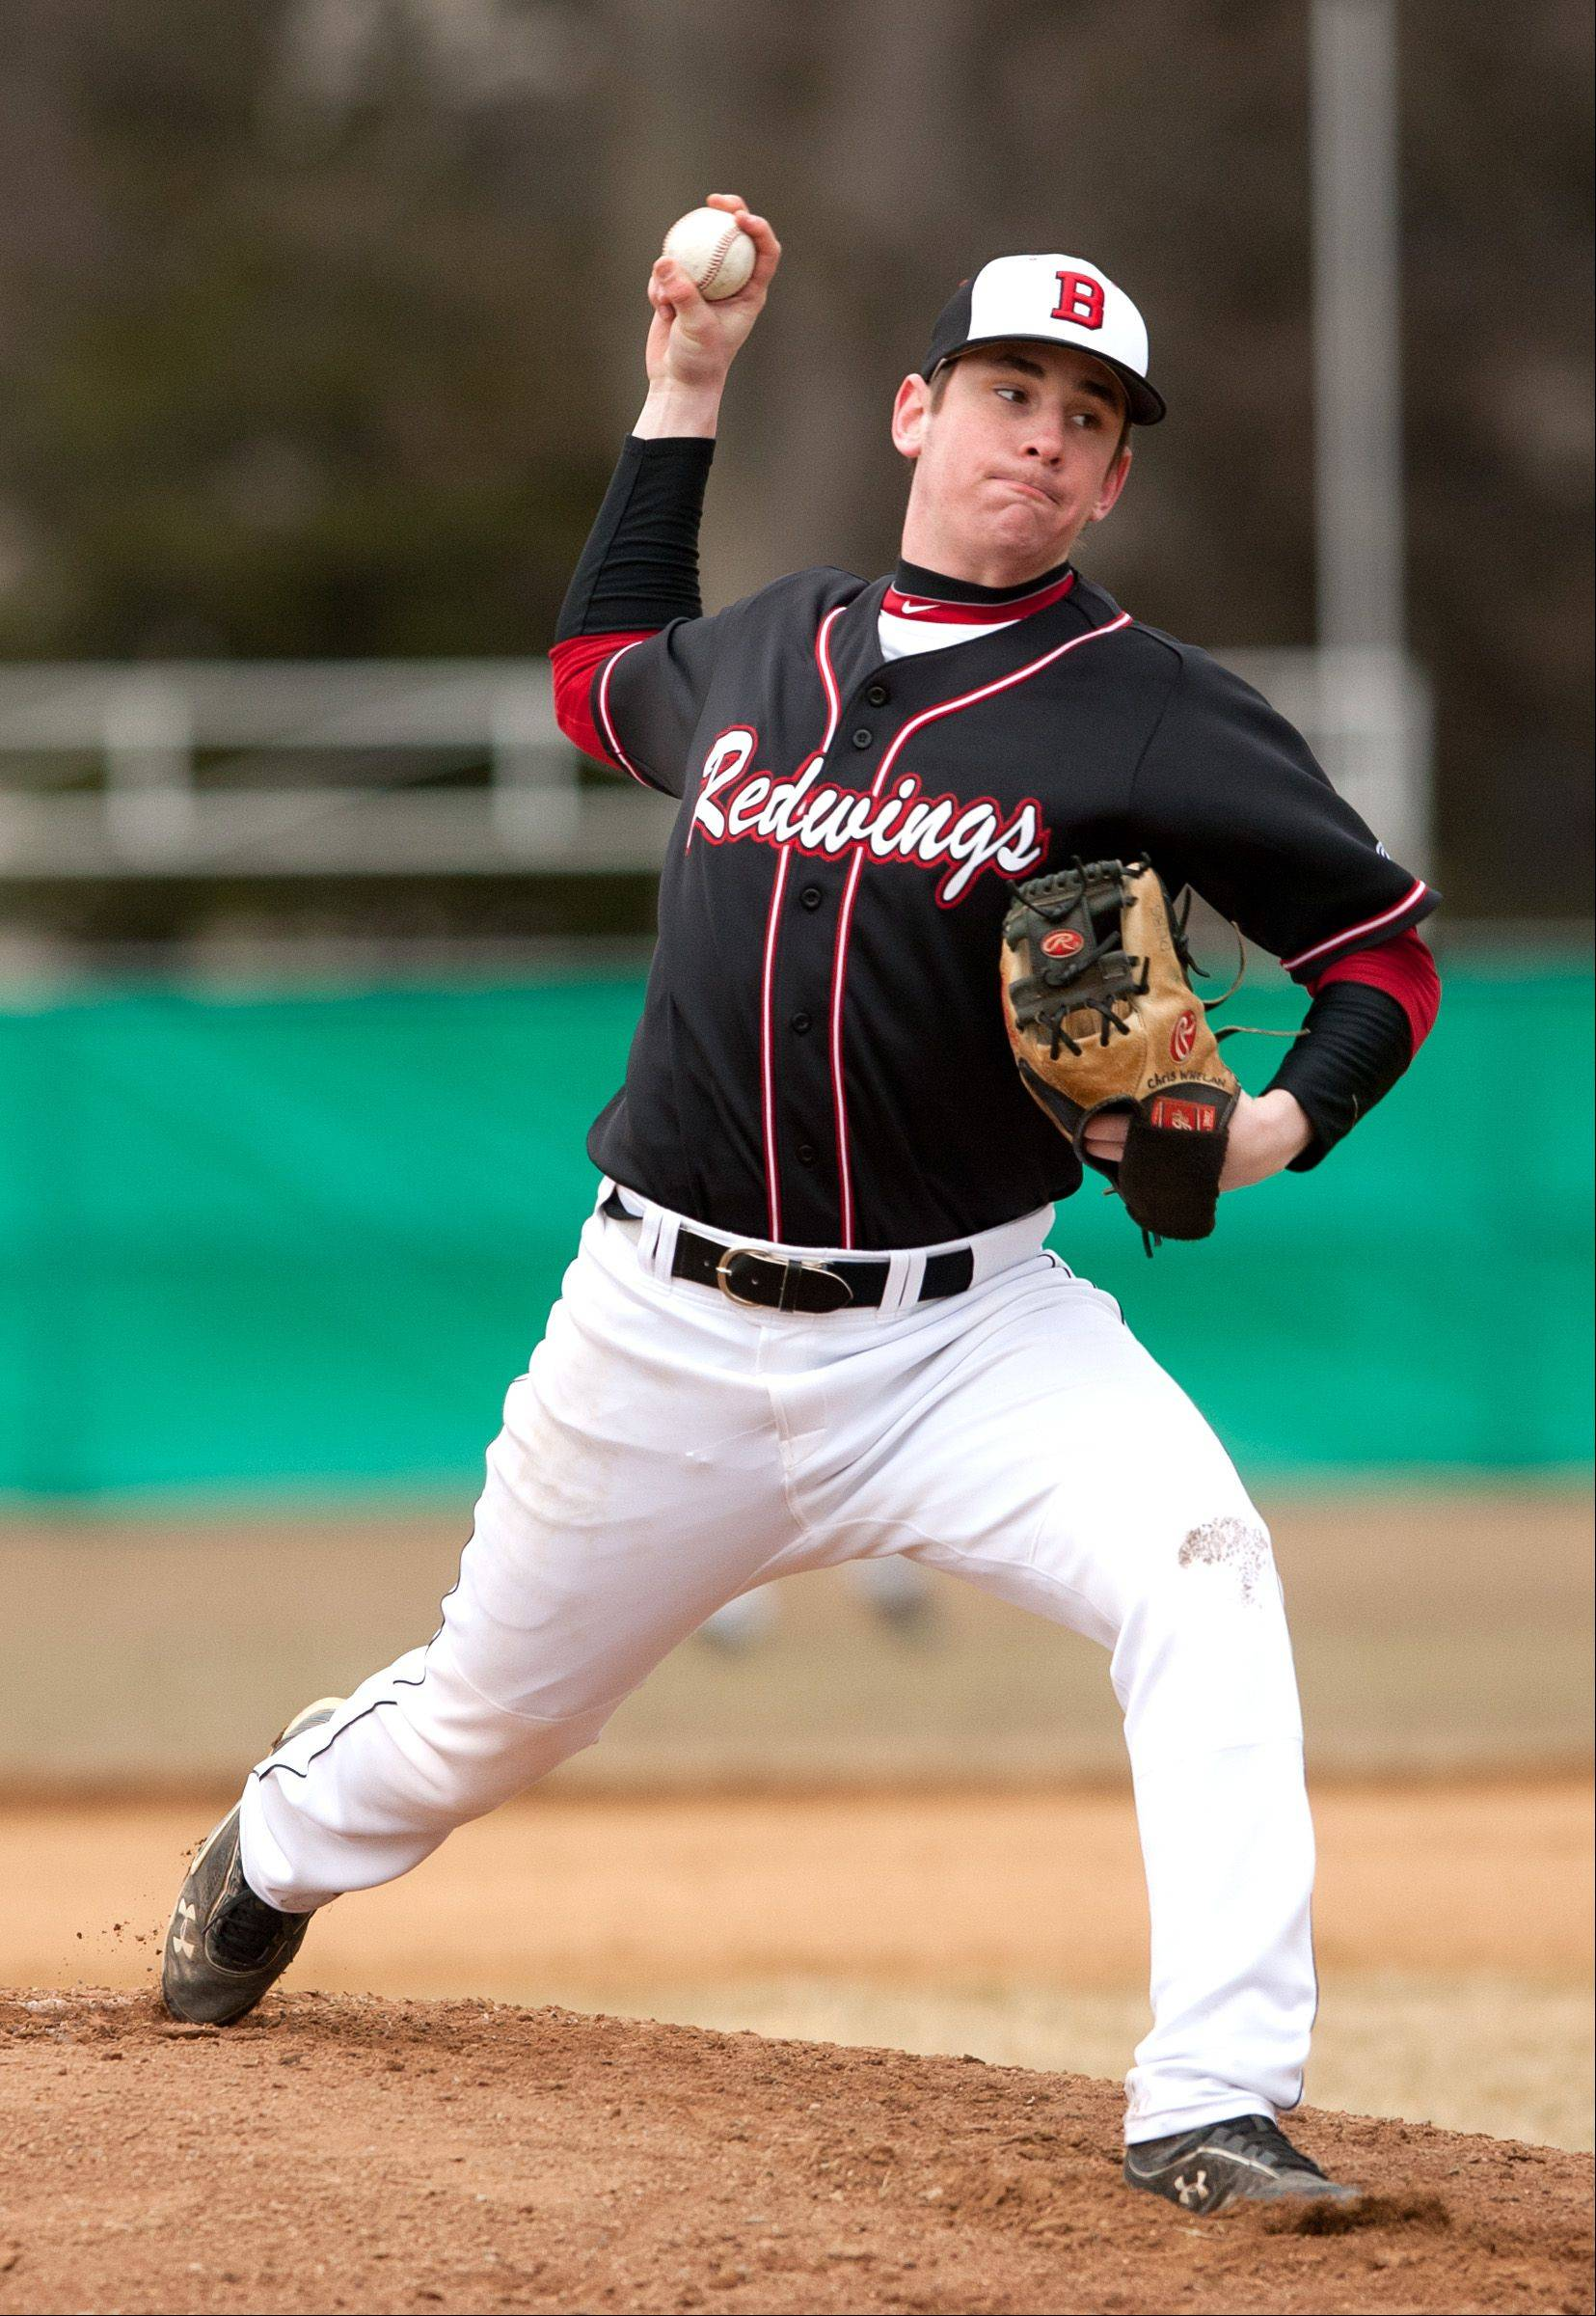 Benet's Chris Whelan delivers a pitch against York during baseball action in Elmhurst.